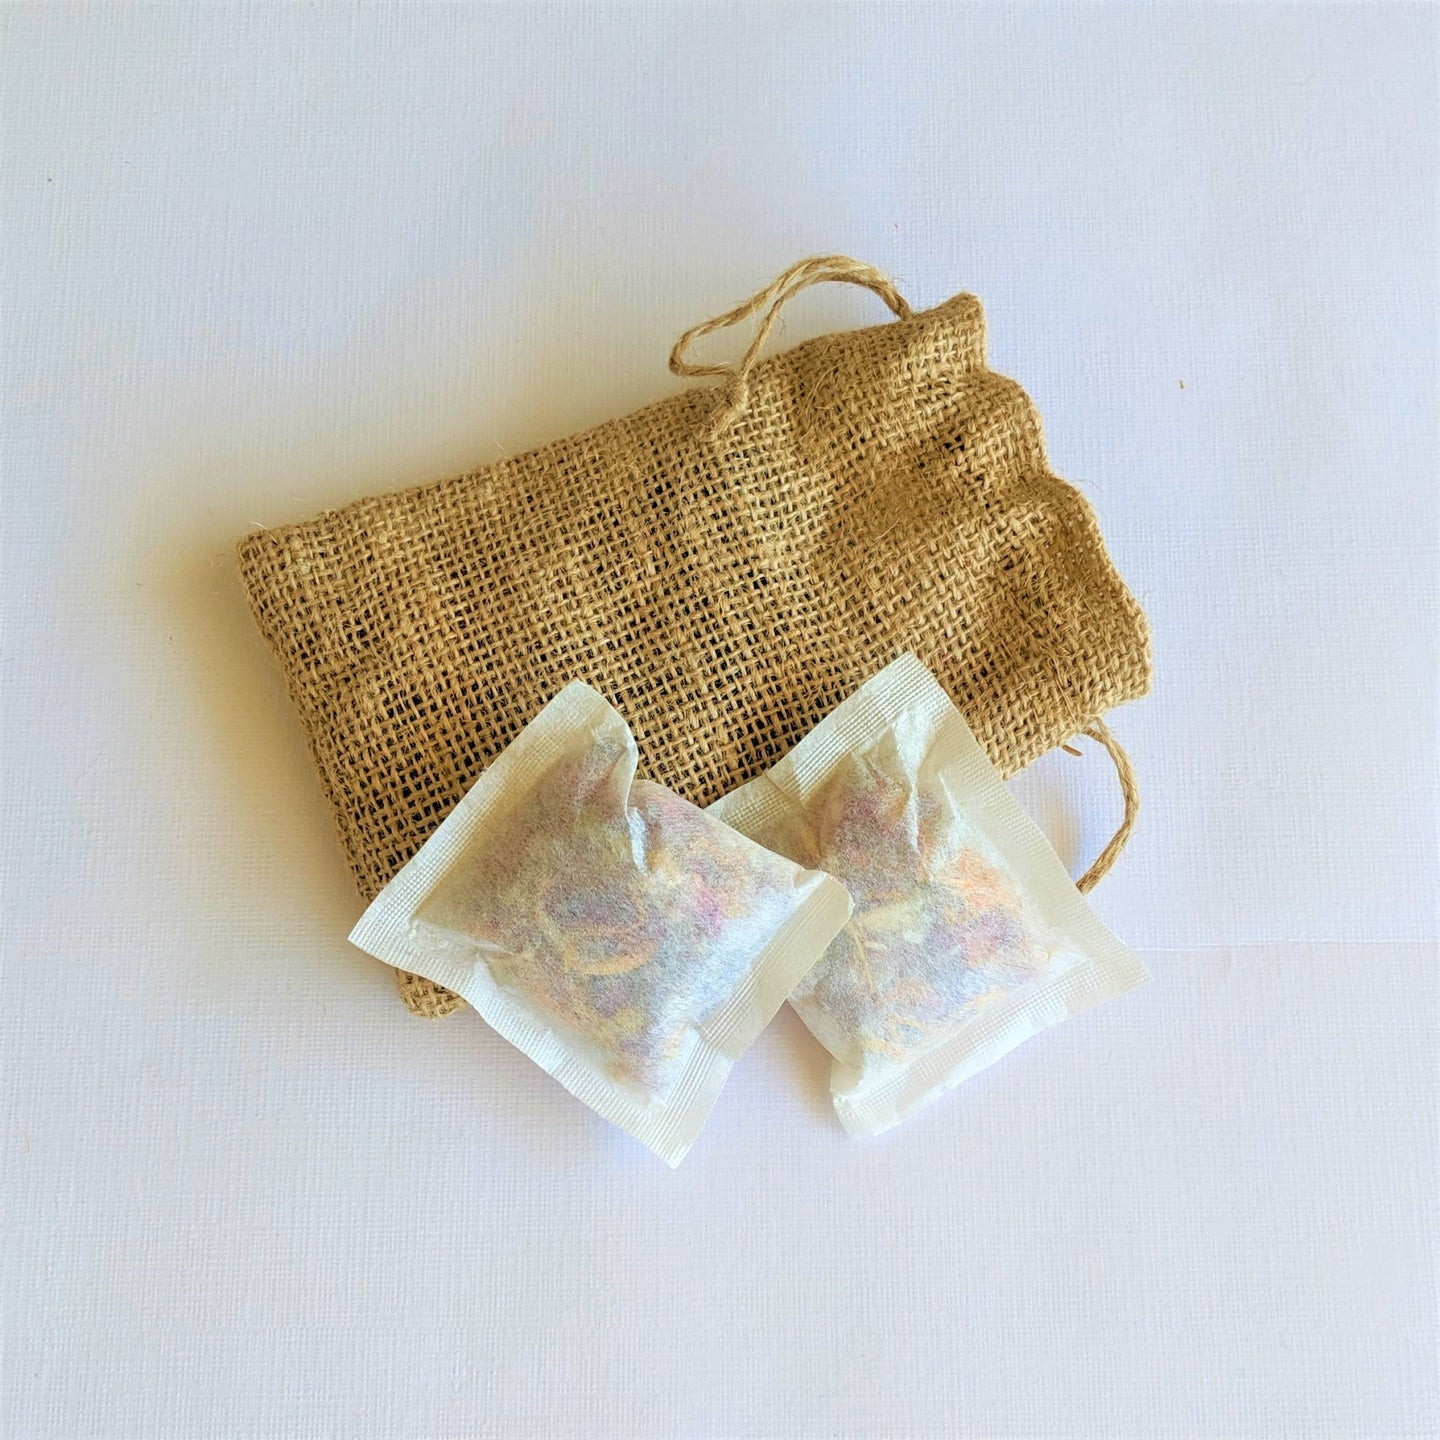 Swirl Box Bath Tea in hessian bag